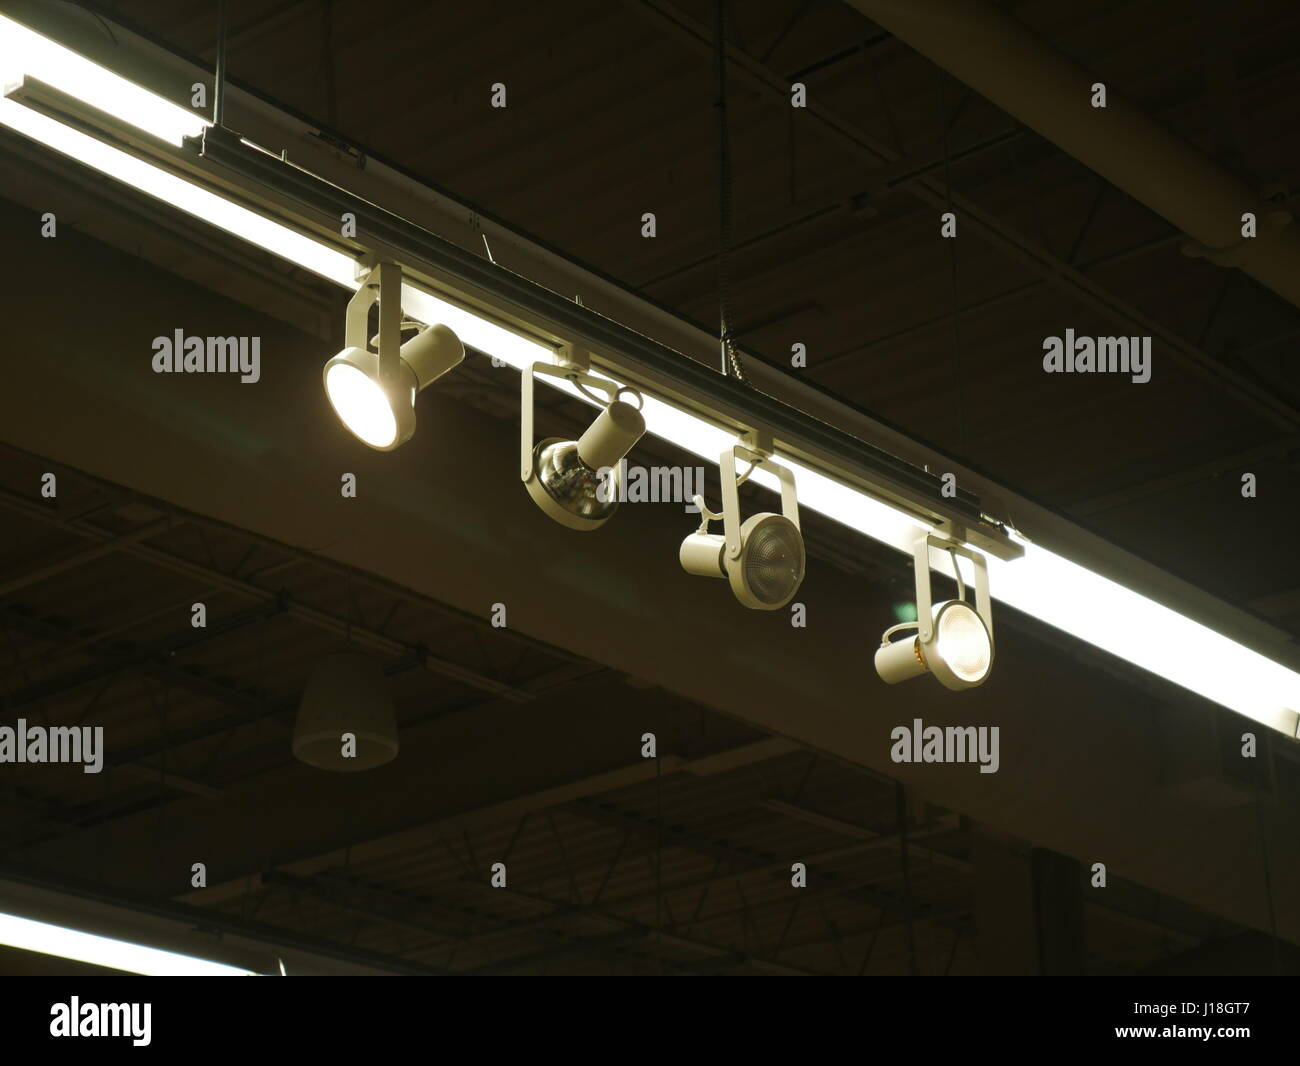 Set of spot lights on a rail hanging from the ceiling - Stock Image